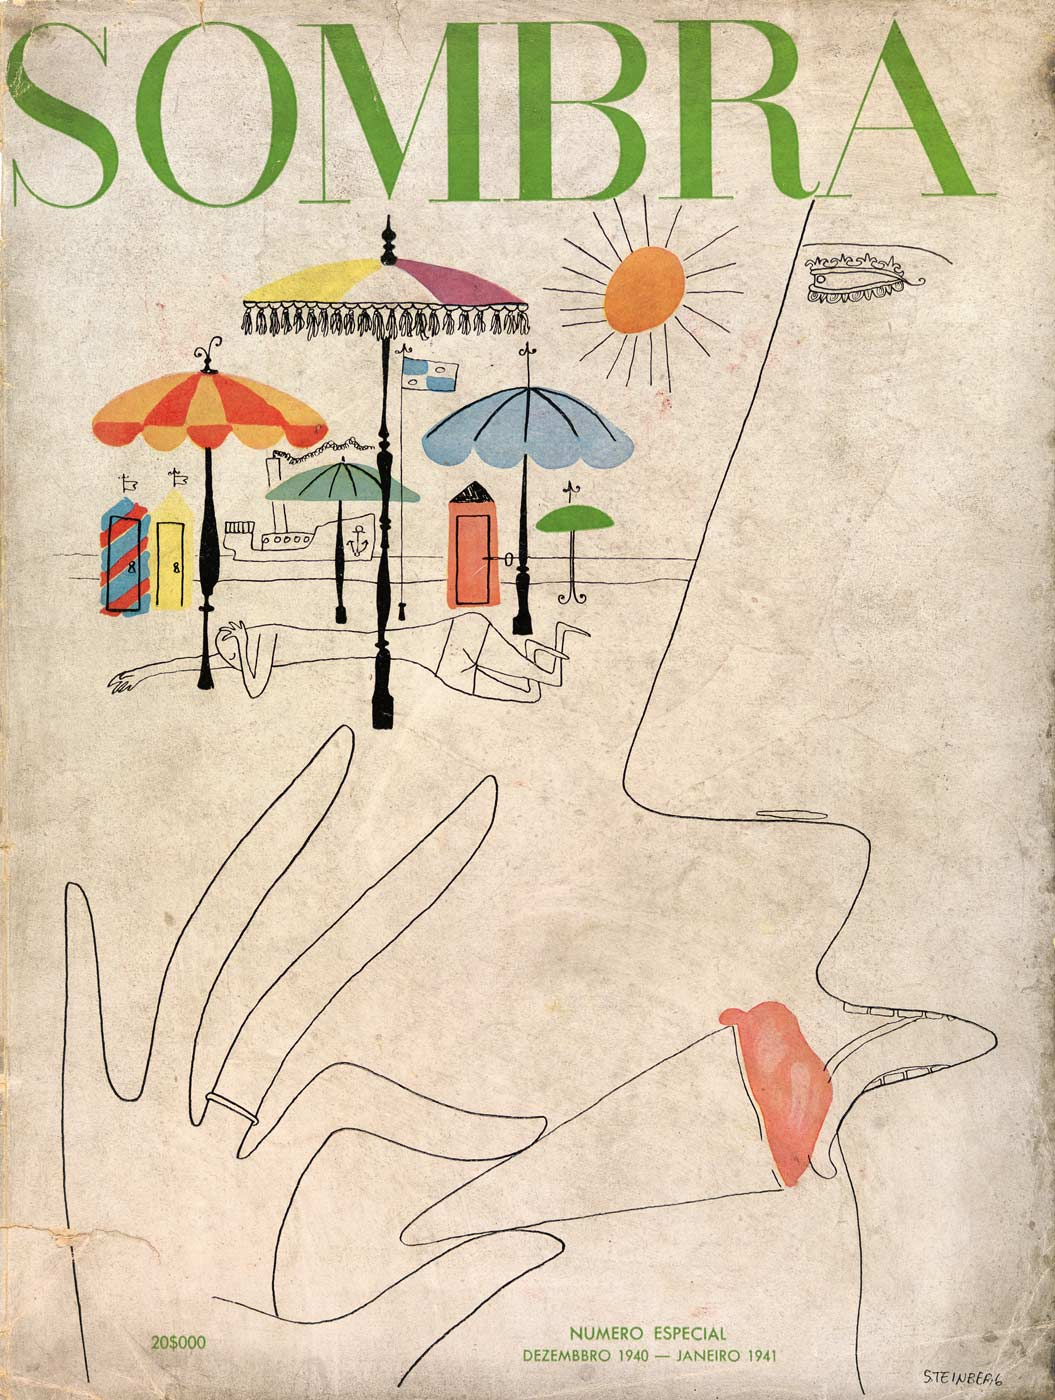 Cover and two inside drawings published in the Brazilian magazine Sombra (December 1940-January 1941).